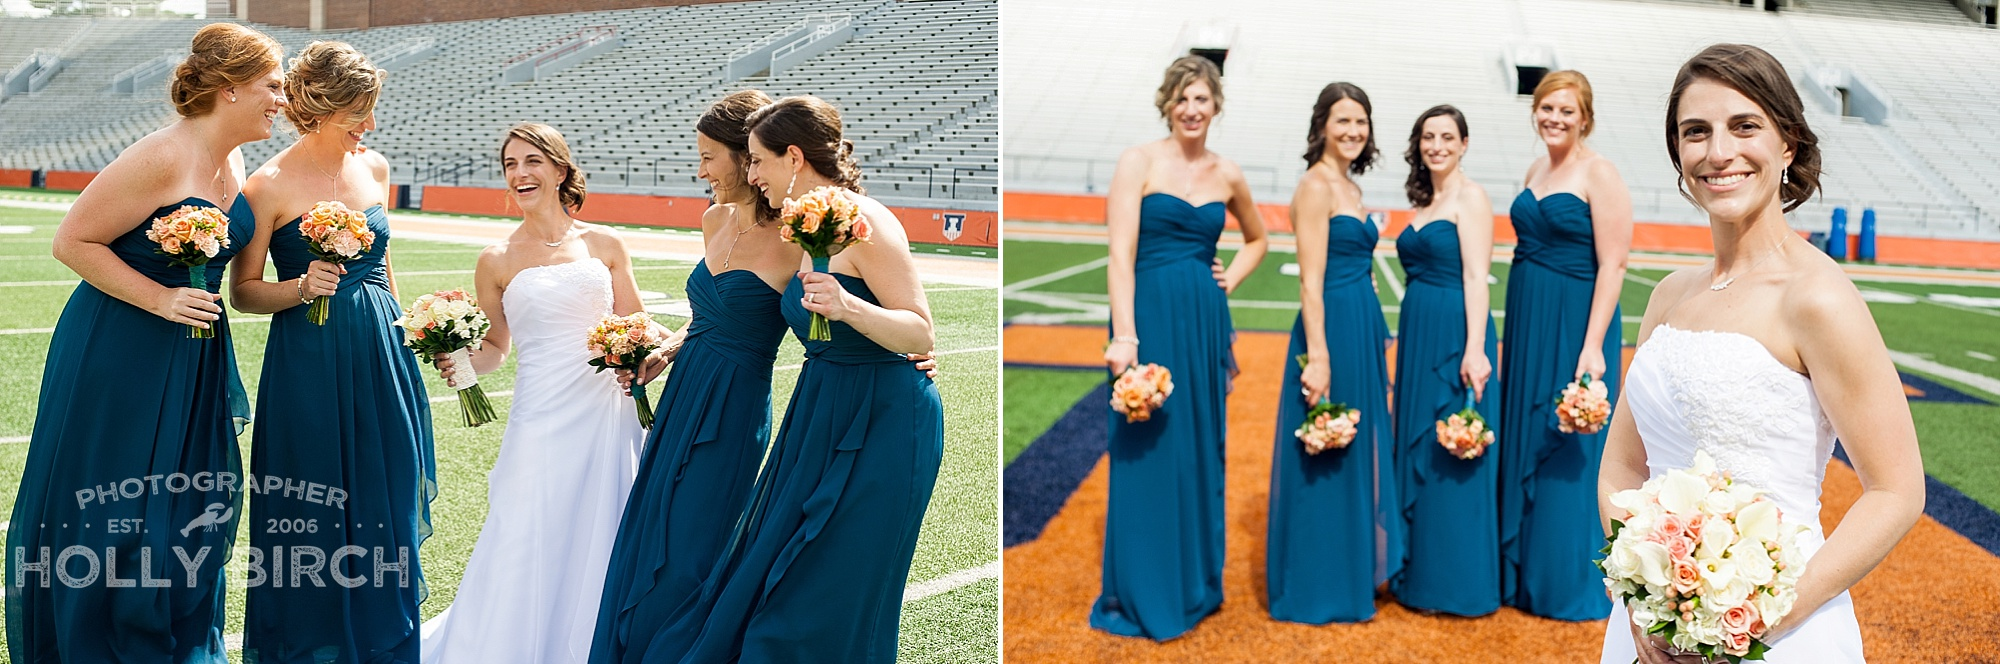 bridesmaids on football field